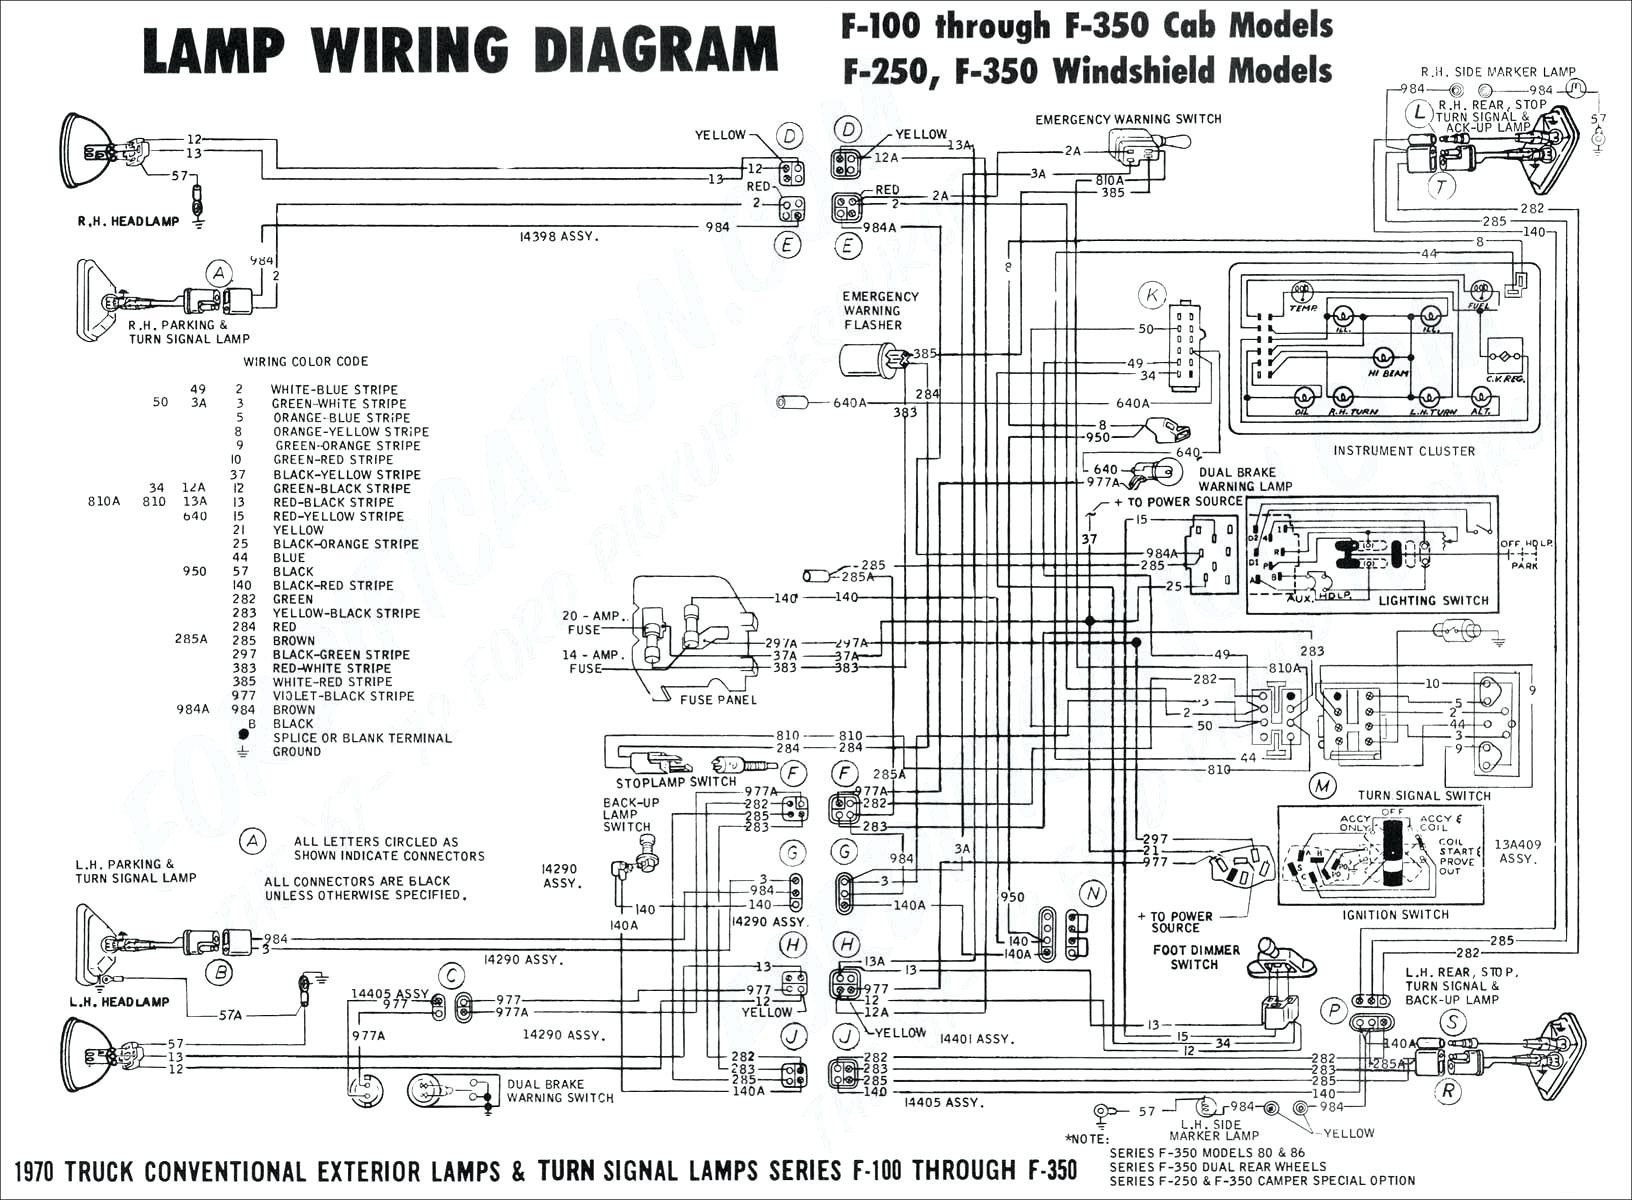 1994 Chevy Truck Brake Light Wiring Diagram Tail Light Wiring Diagram 1995 Chevy Truck Elegant Wiring Diagram